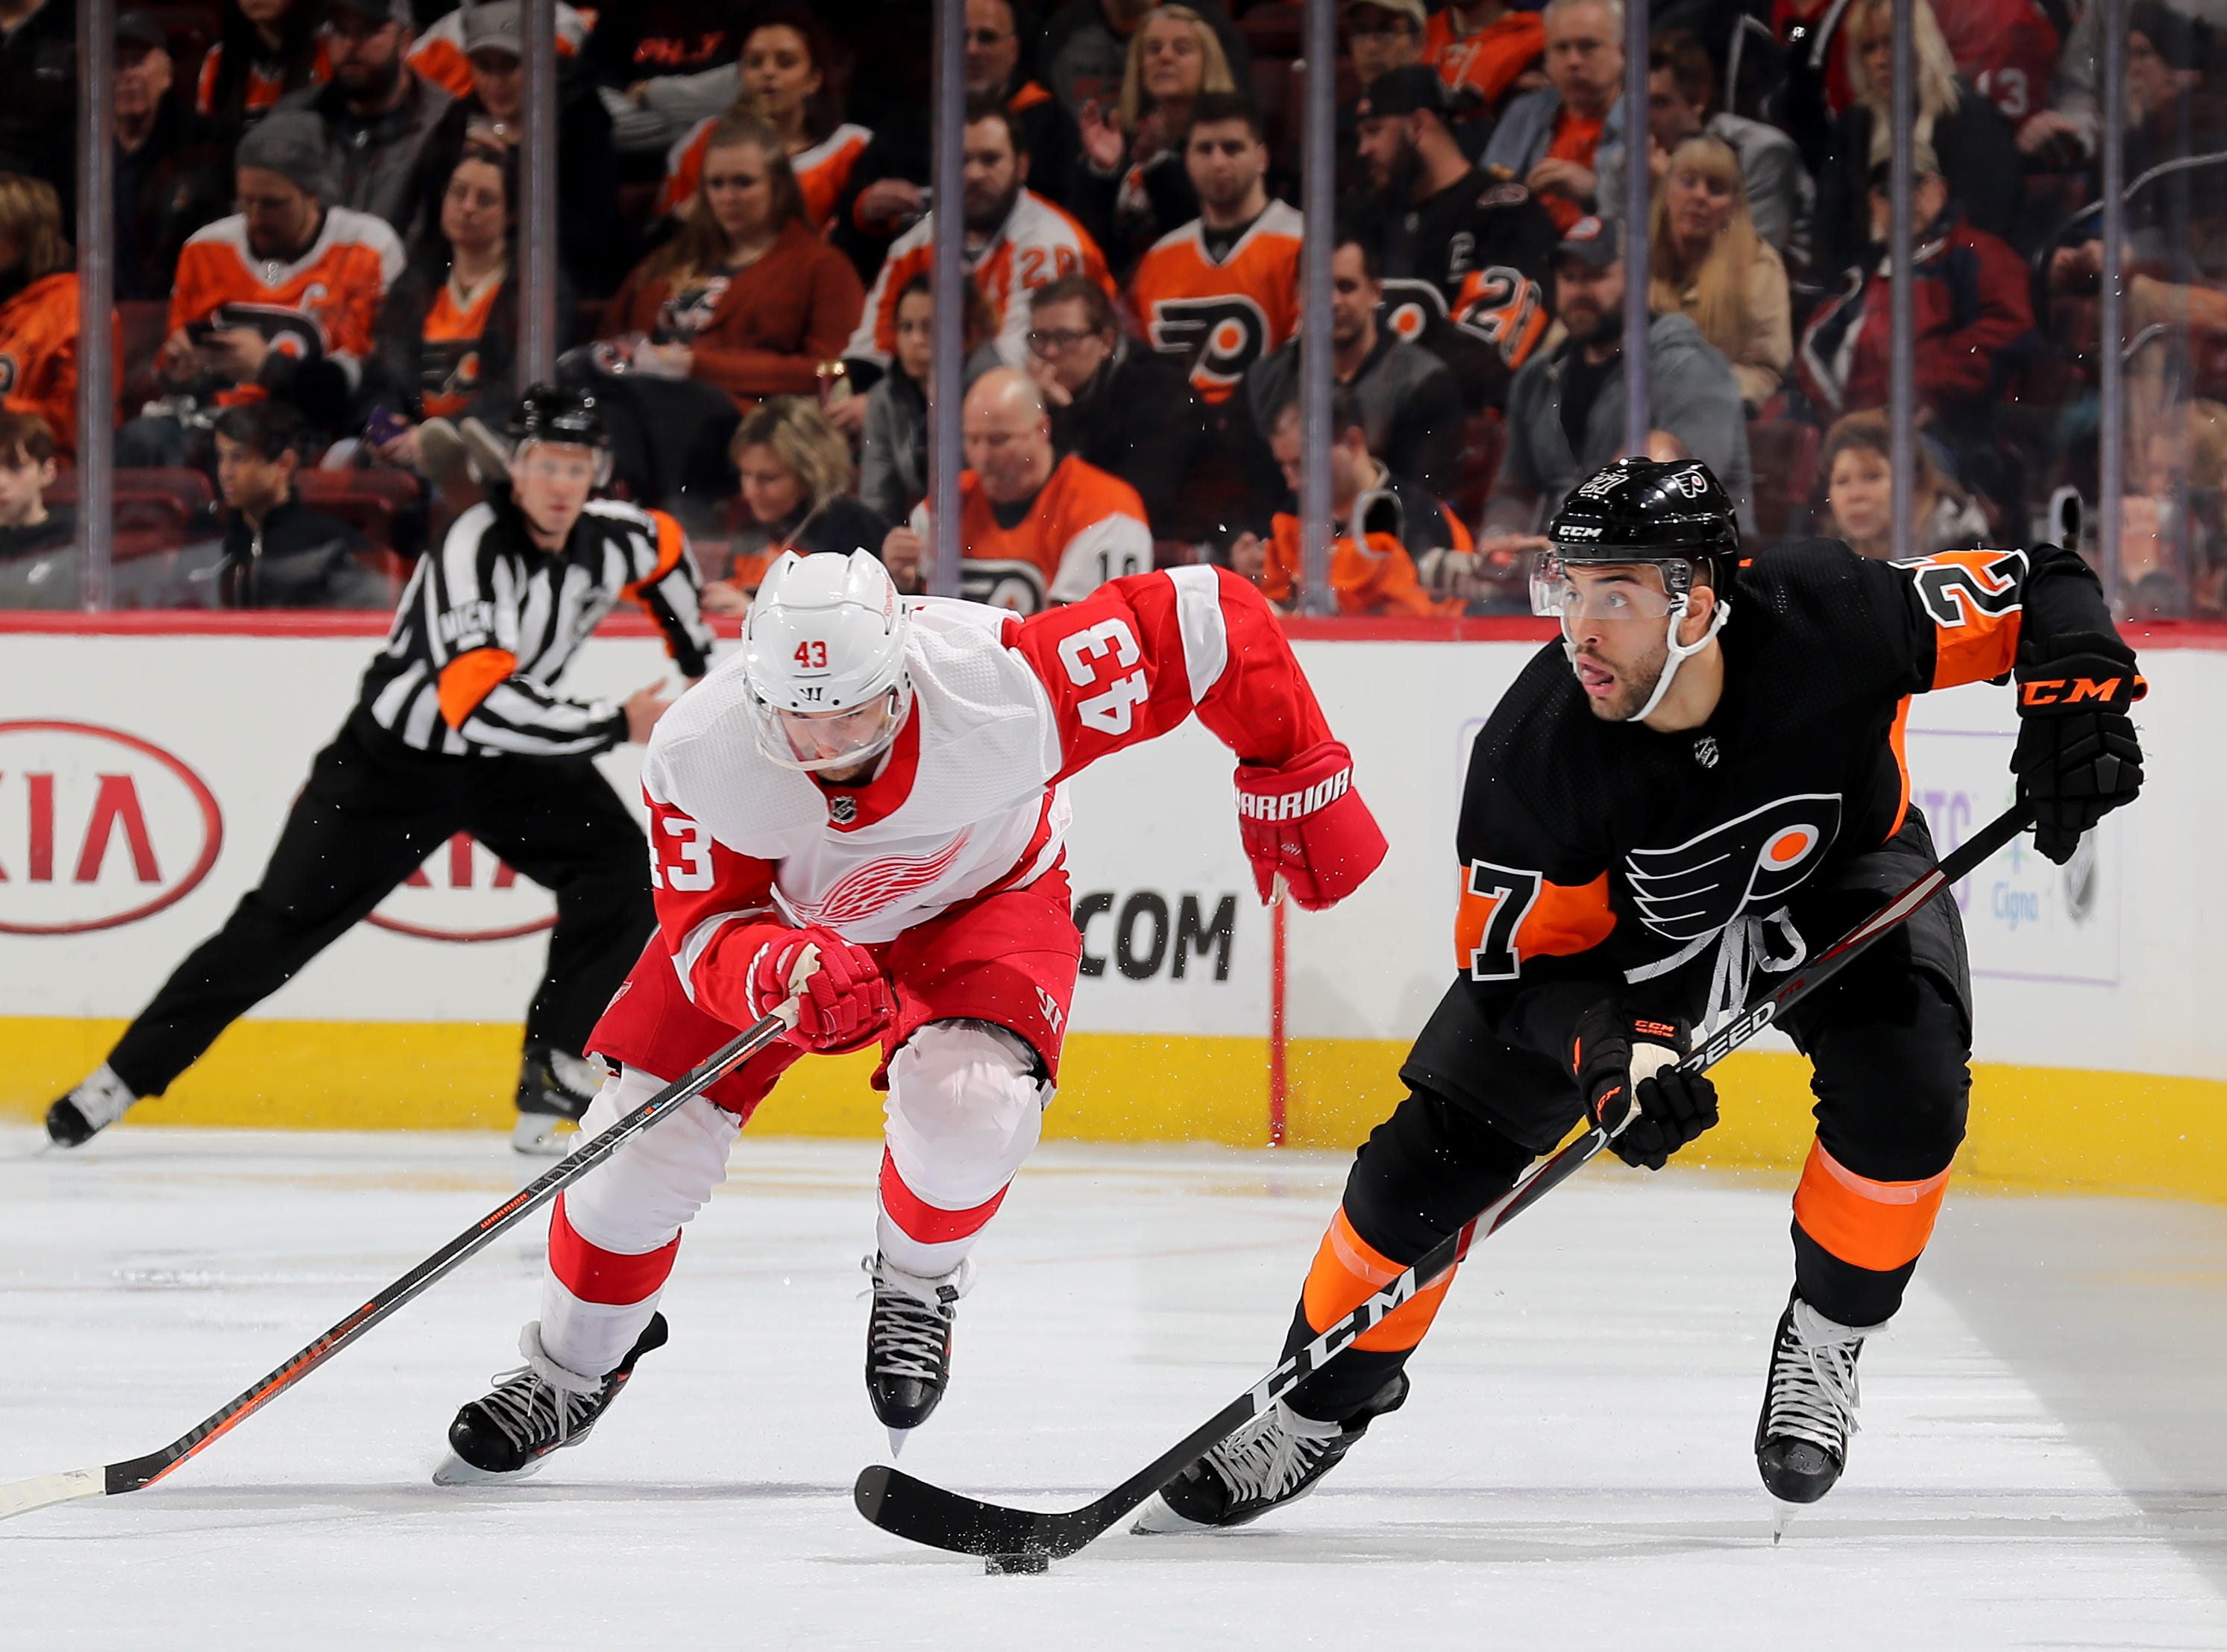 PHILADELPHIA, PENNSYLVANIA - FEBRUARY 16:   Justin Bailey #27 of the Philadelphia Flyers takes the puck as Darren Helm #43 of the Detroit Red Wings defends in the second period at Wells Fargo Center on February 16, 2019 in Philadelphia, Pennsylvania. (Photo by Elsa/Getty Images)